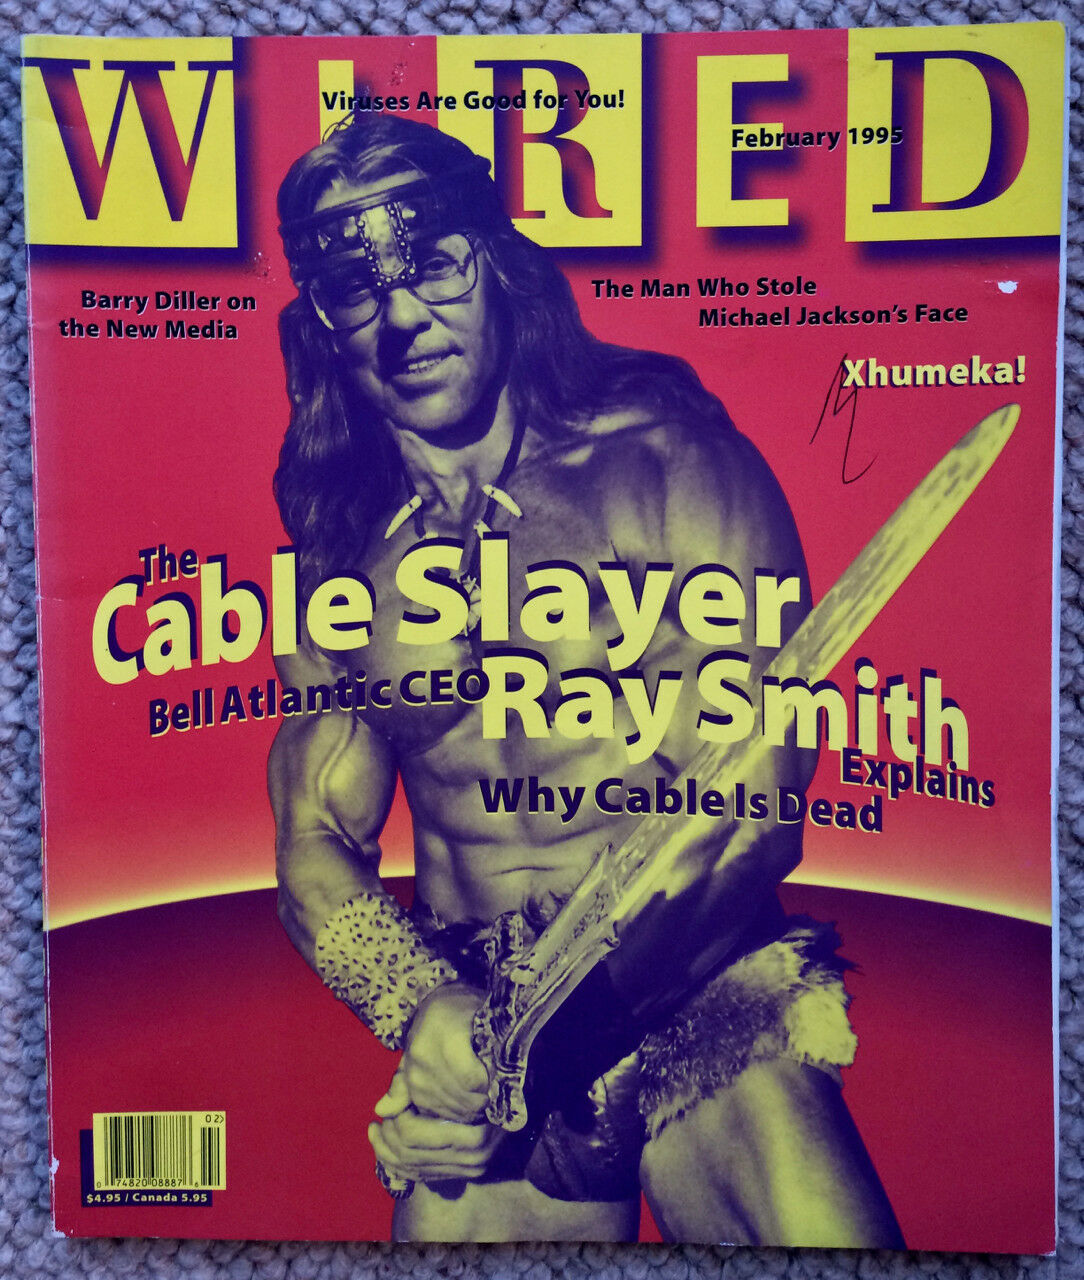 WIRED MAGAZINE (US edition) February 1995 excellent condition ...